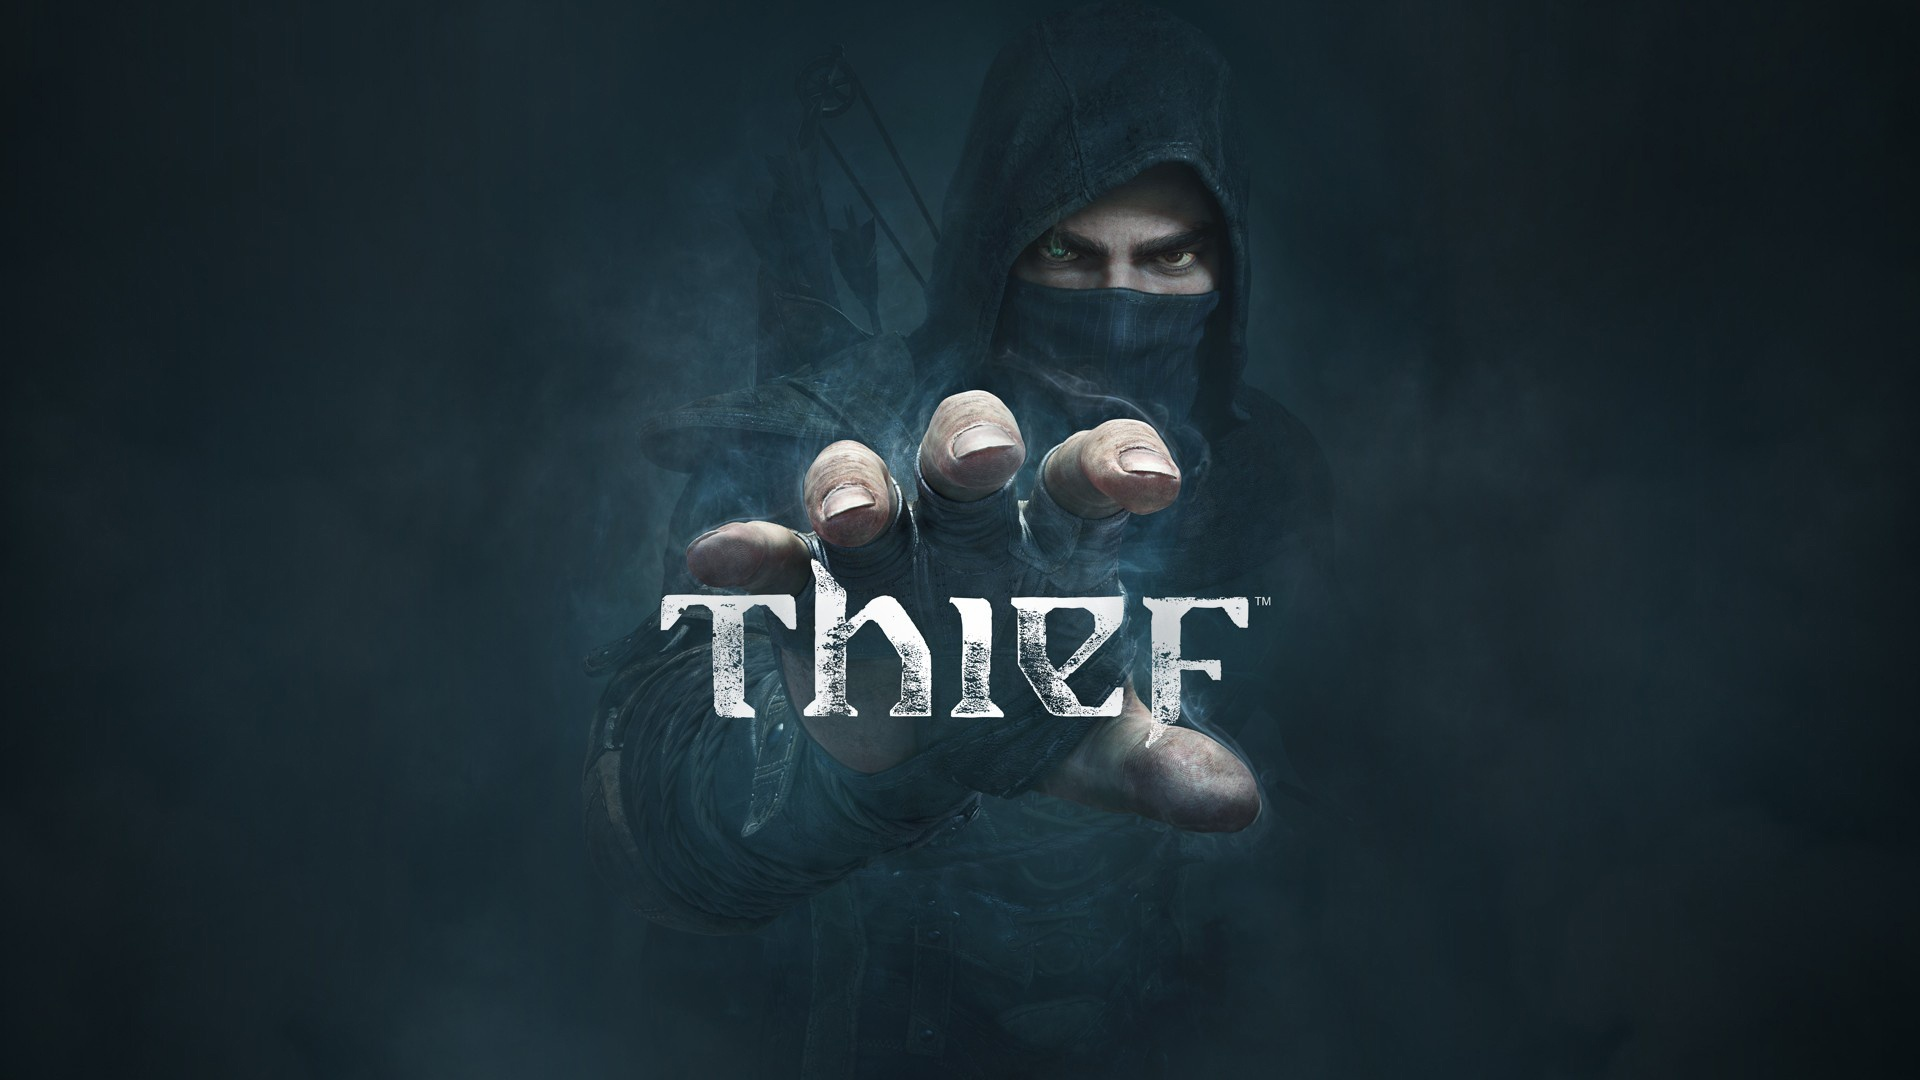 April-Savegame-Bug in THIEF aufgetaucht, Square Enix arbeitet an Lösung